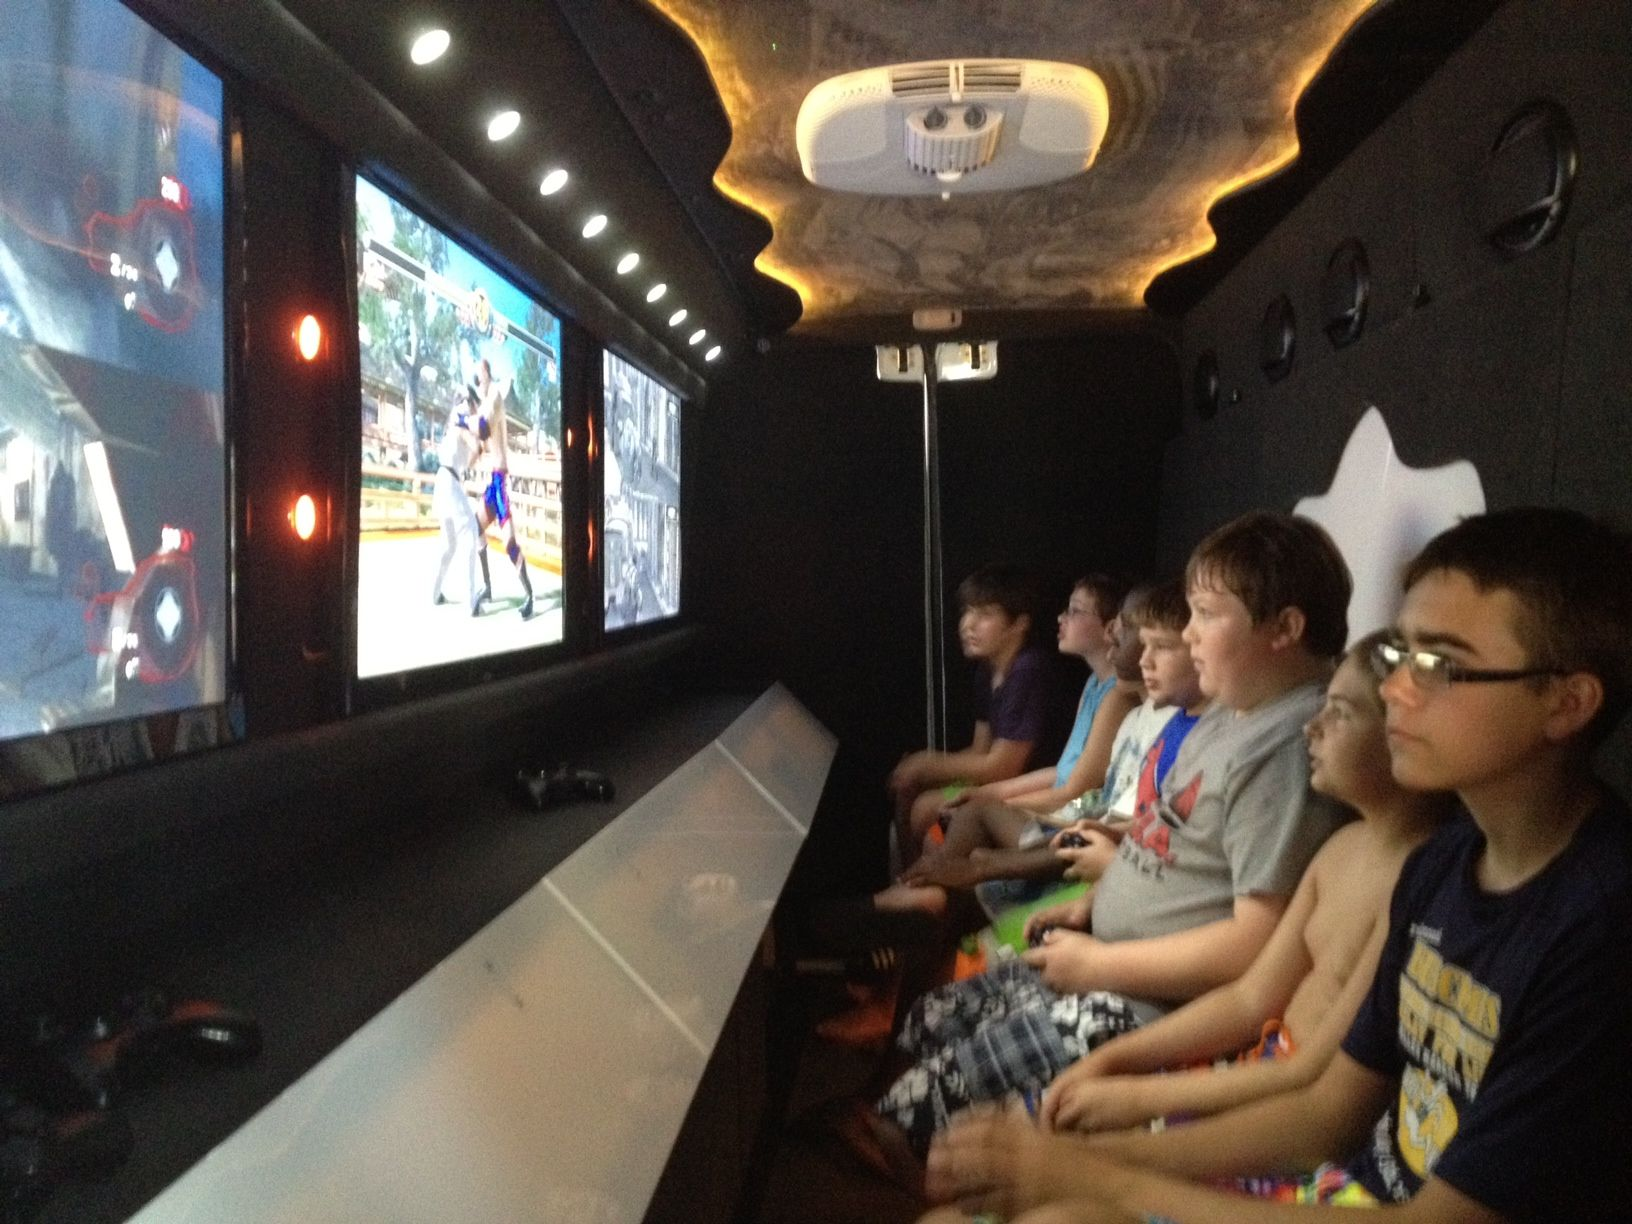 Check Out Http Thrillsonwheelsgametruck Com For Los Angeles Game Truck And Game Bus Kids Party Games Kids